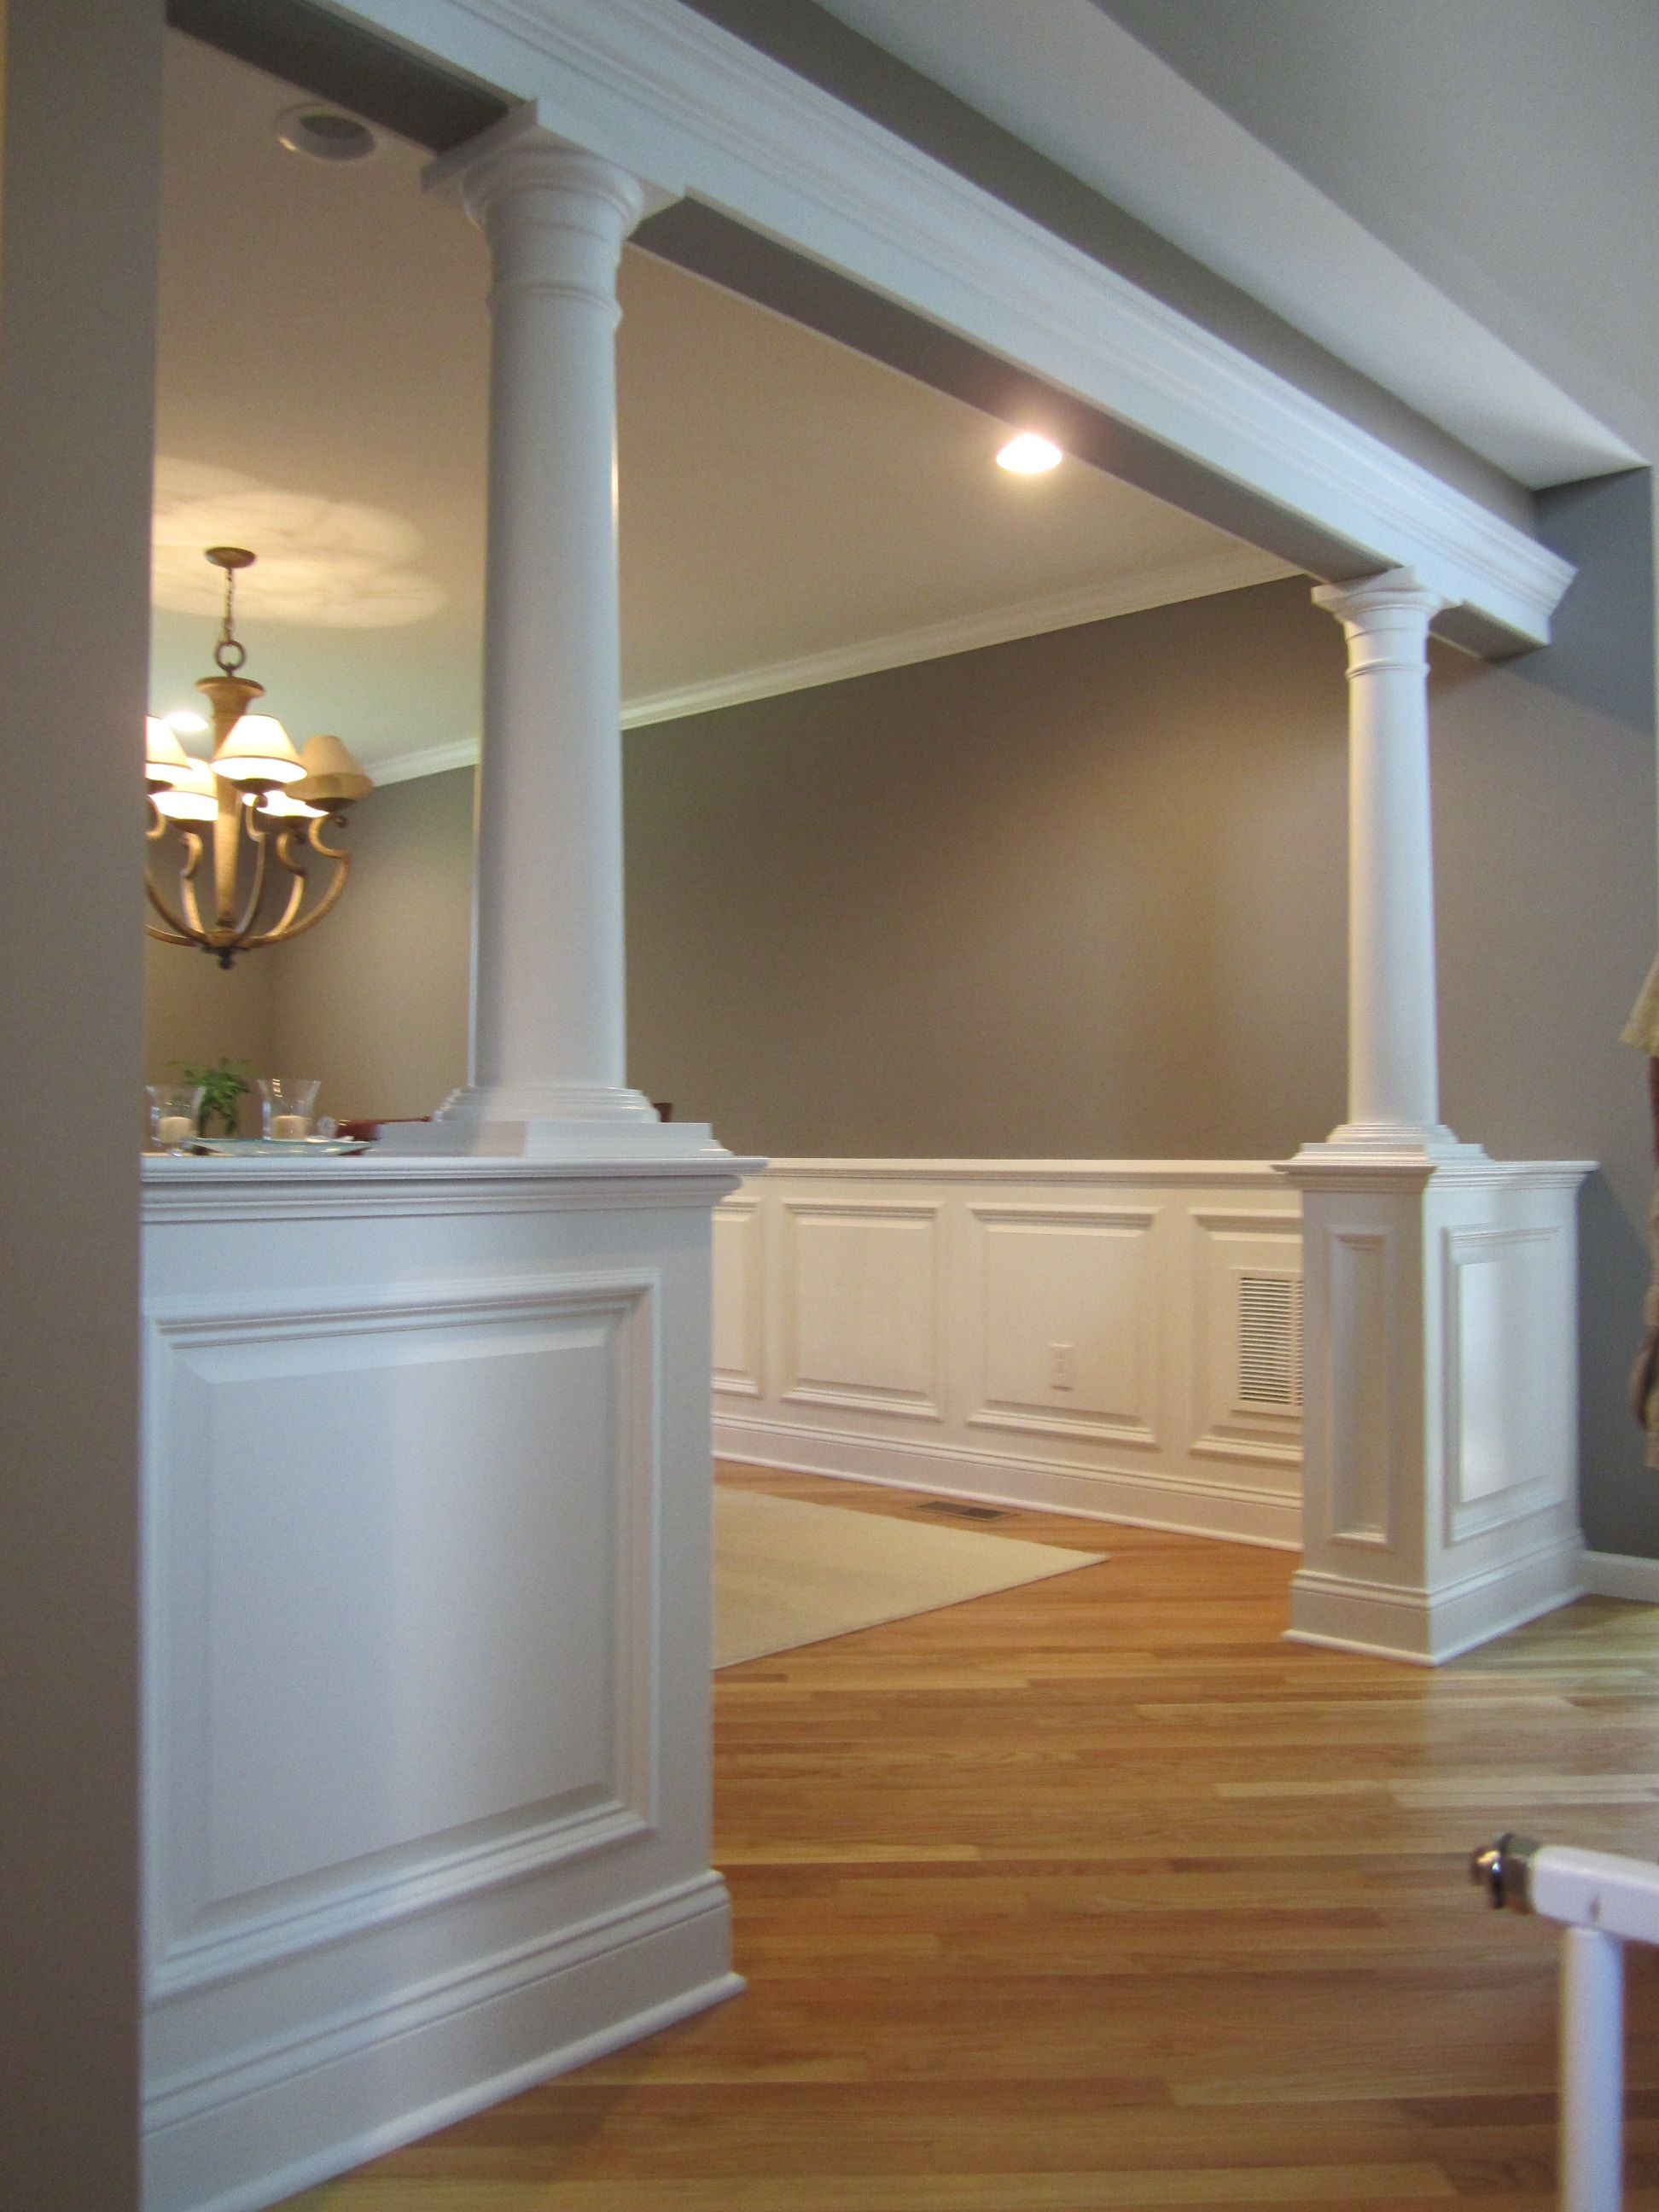 half wall with columns bolton ct home ideas pinterest bobs house and search